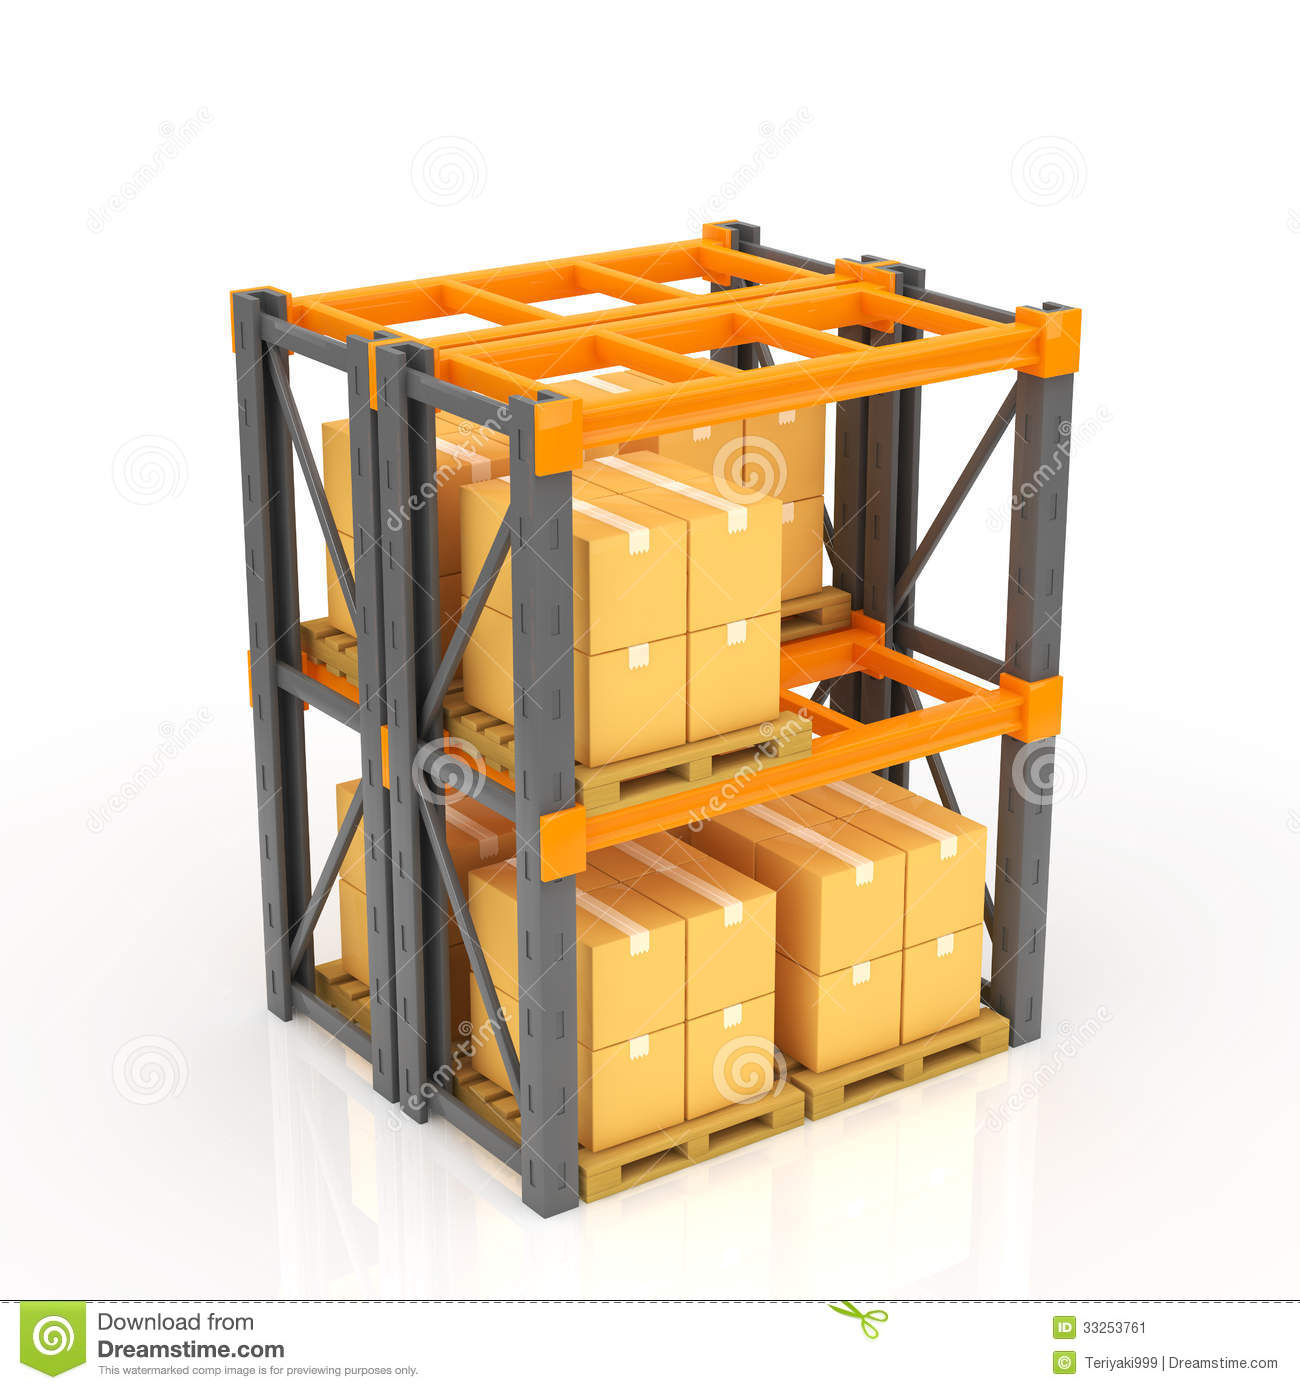 Warehouse Racks Stock Image.